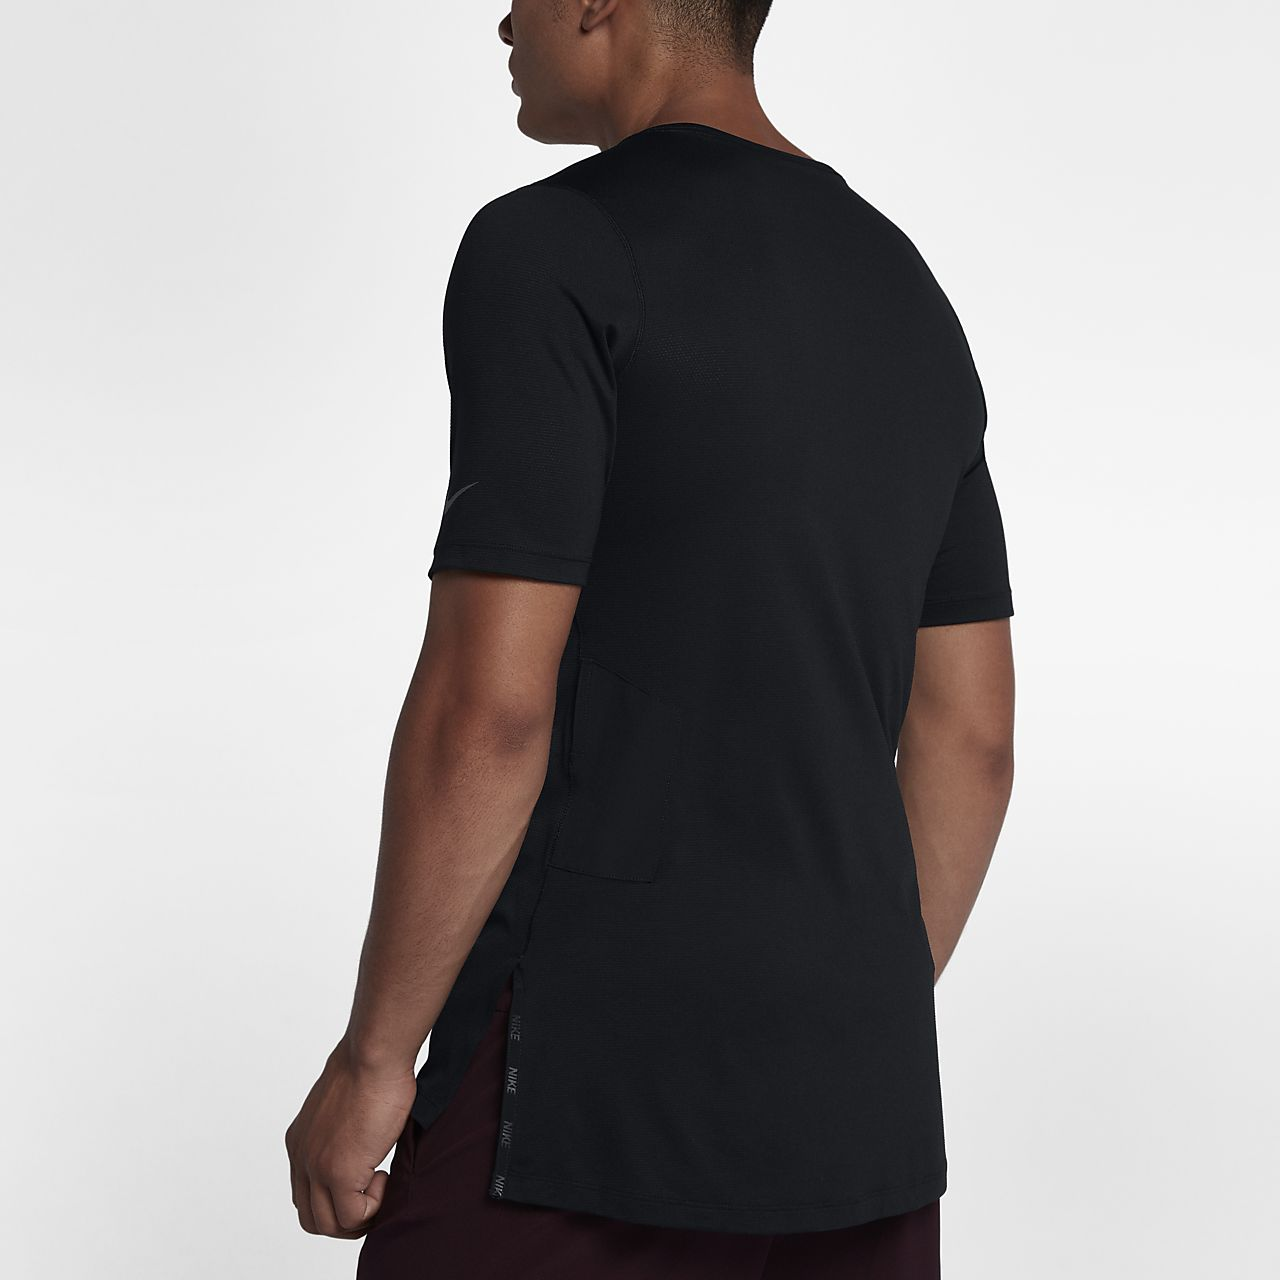 bbfcb279 Nike Dri-FIT Men's Utility Short-Sleeve Training Top. Nike.com AE